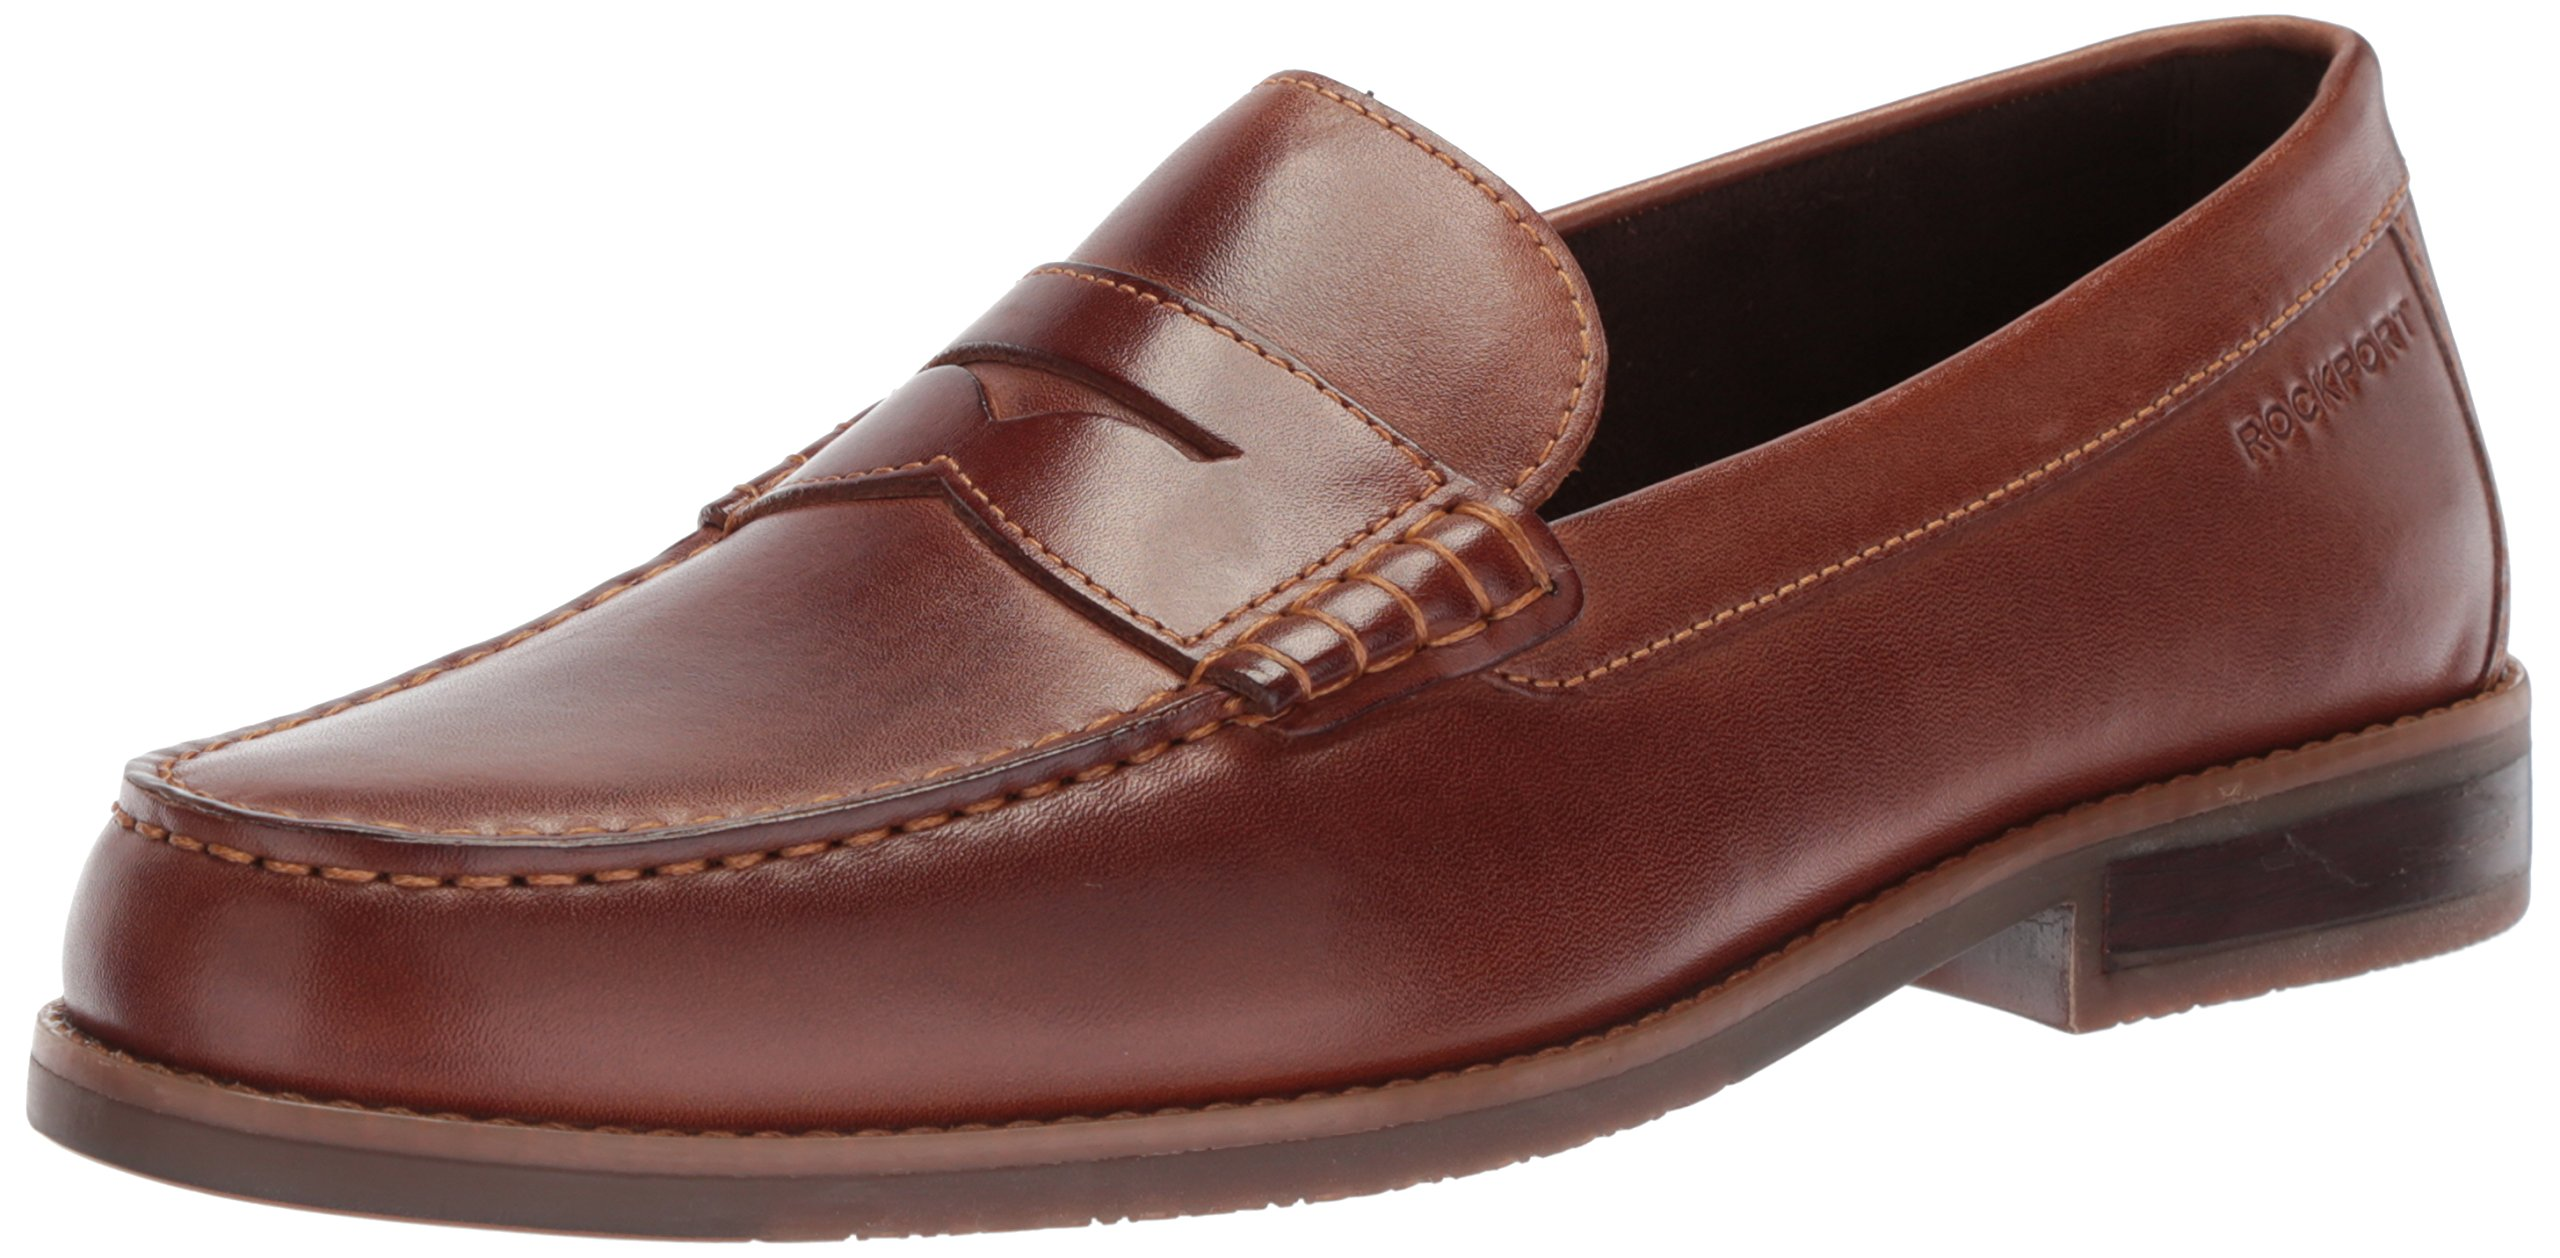 Rockport Men's Curtys Penny Penny Loafer, Brown, 9 M US